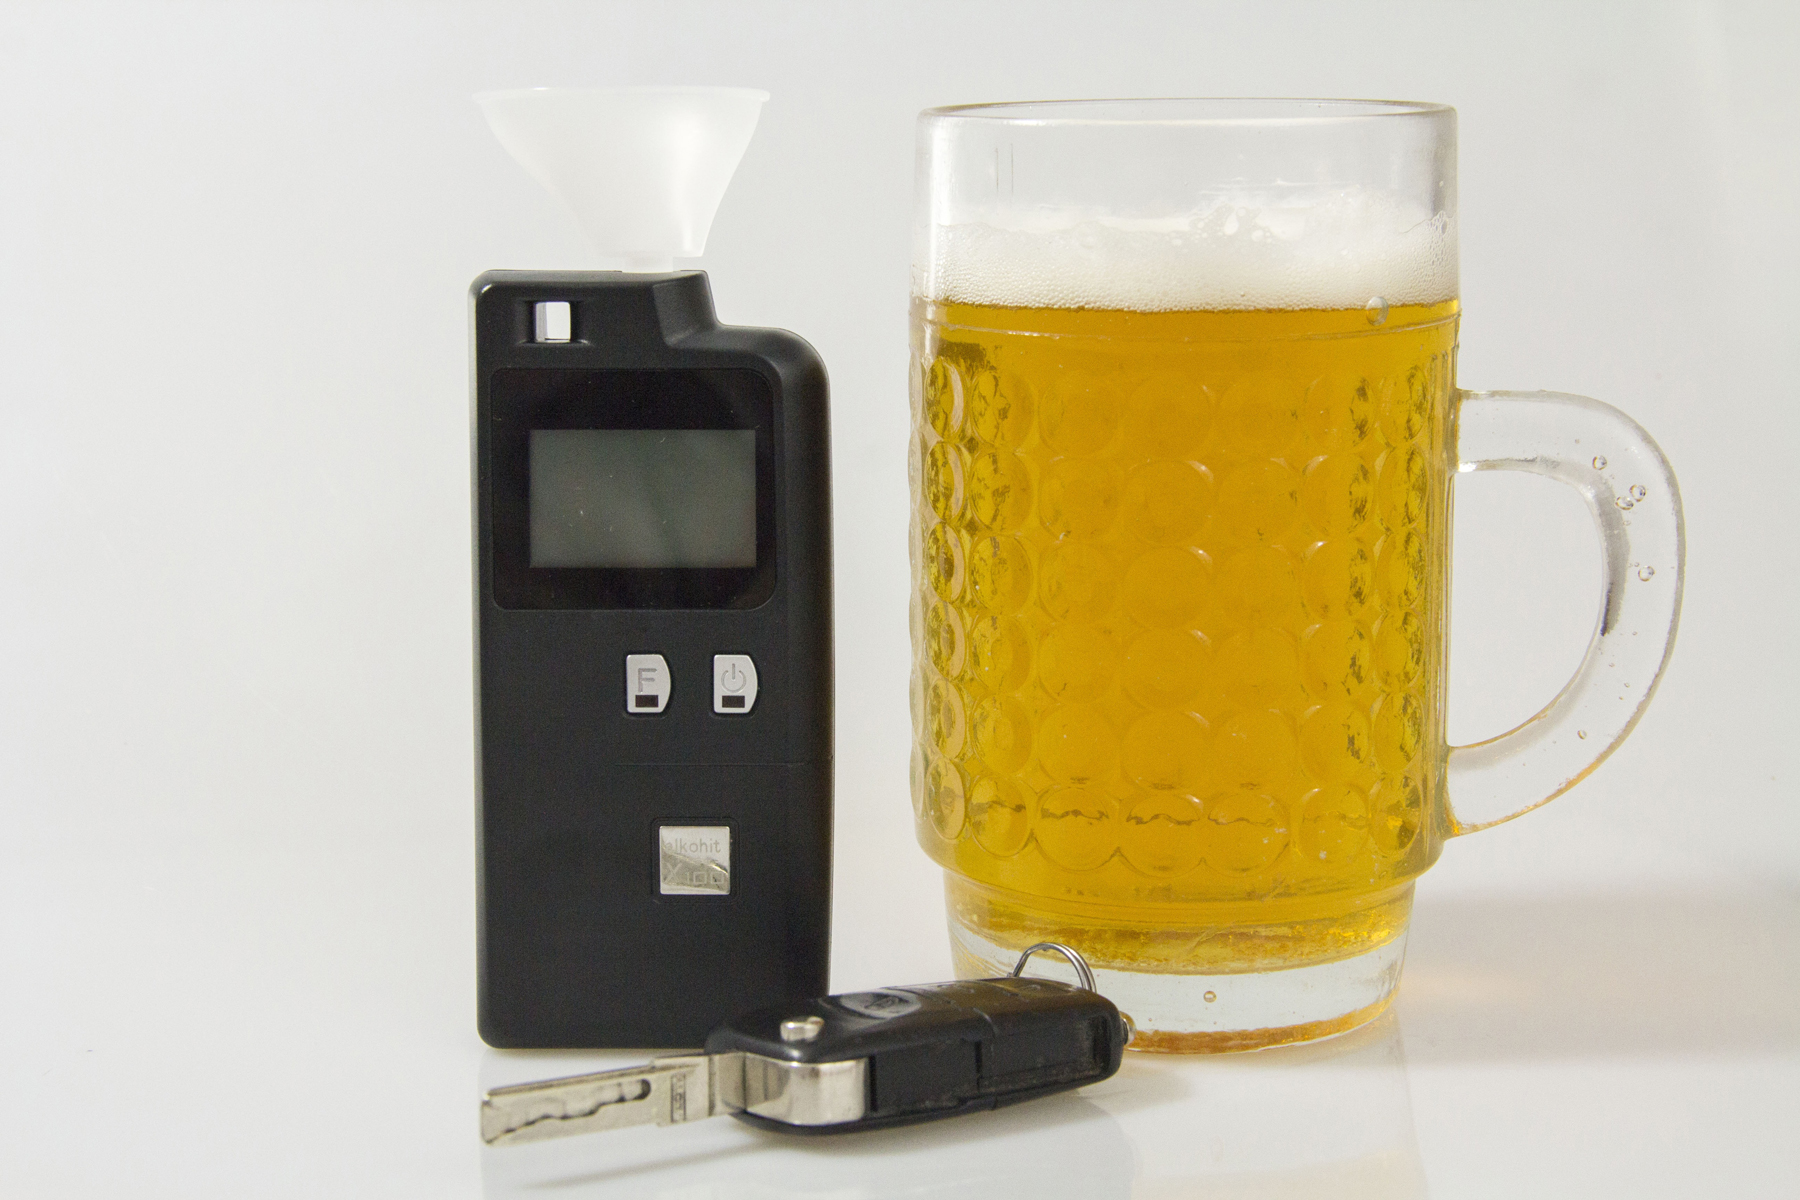 An electronic breathalyser next to a glass of beer